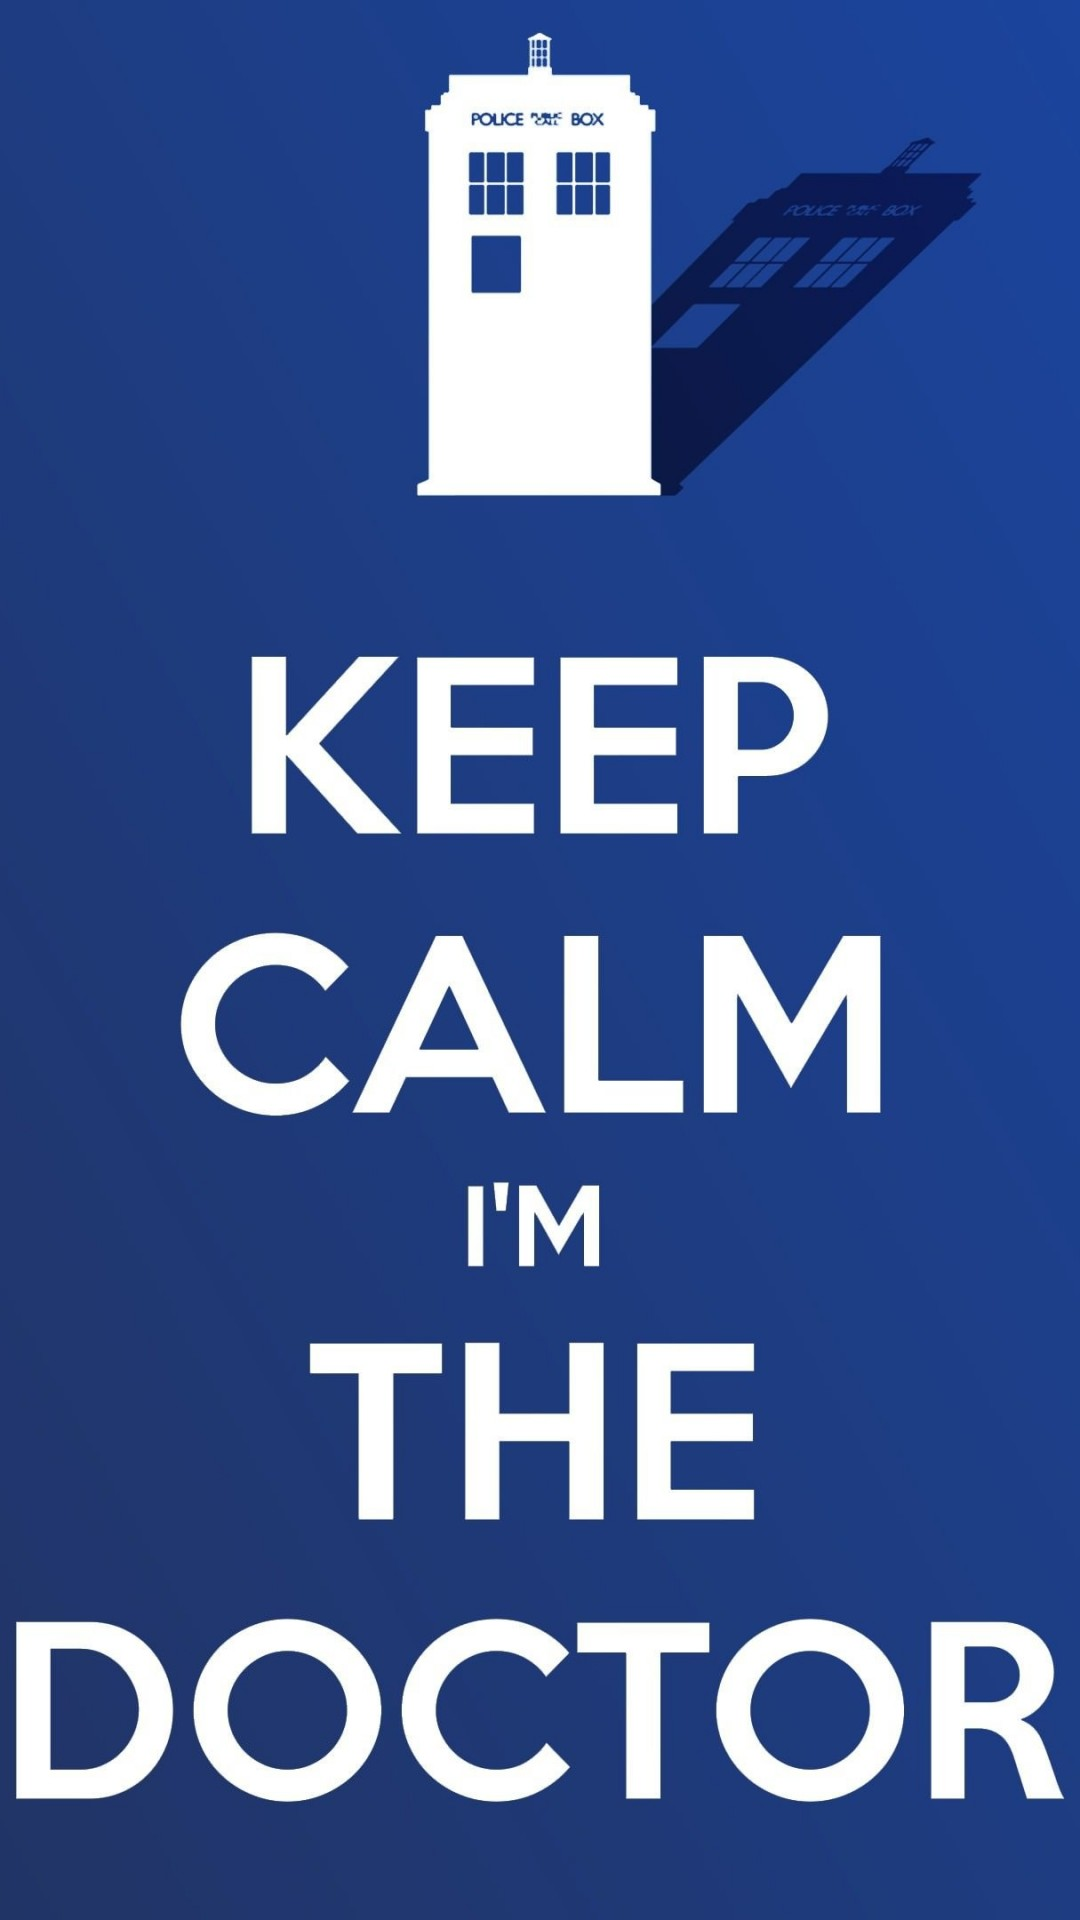 Keep Calm Im The Doctor Wallpaper for LG G2